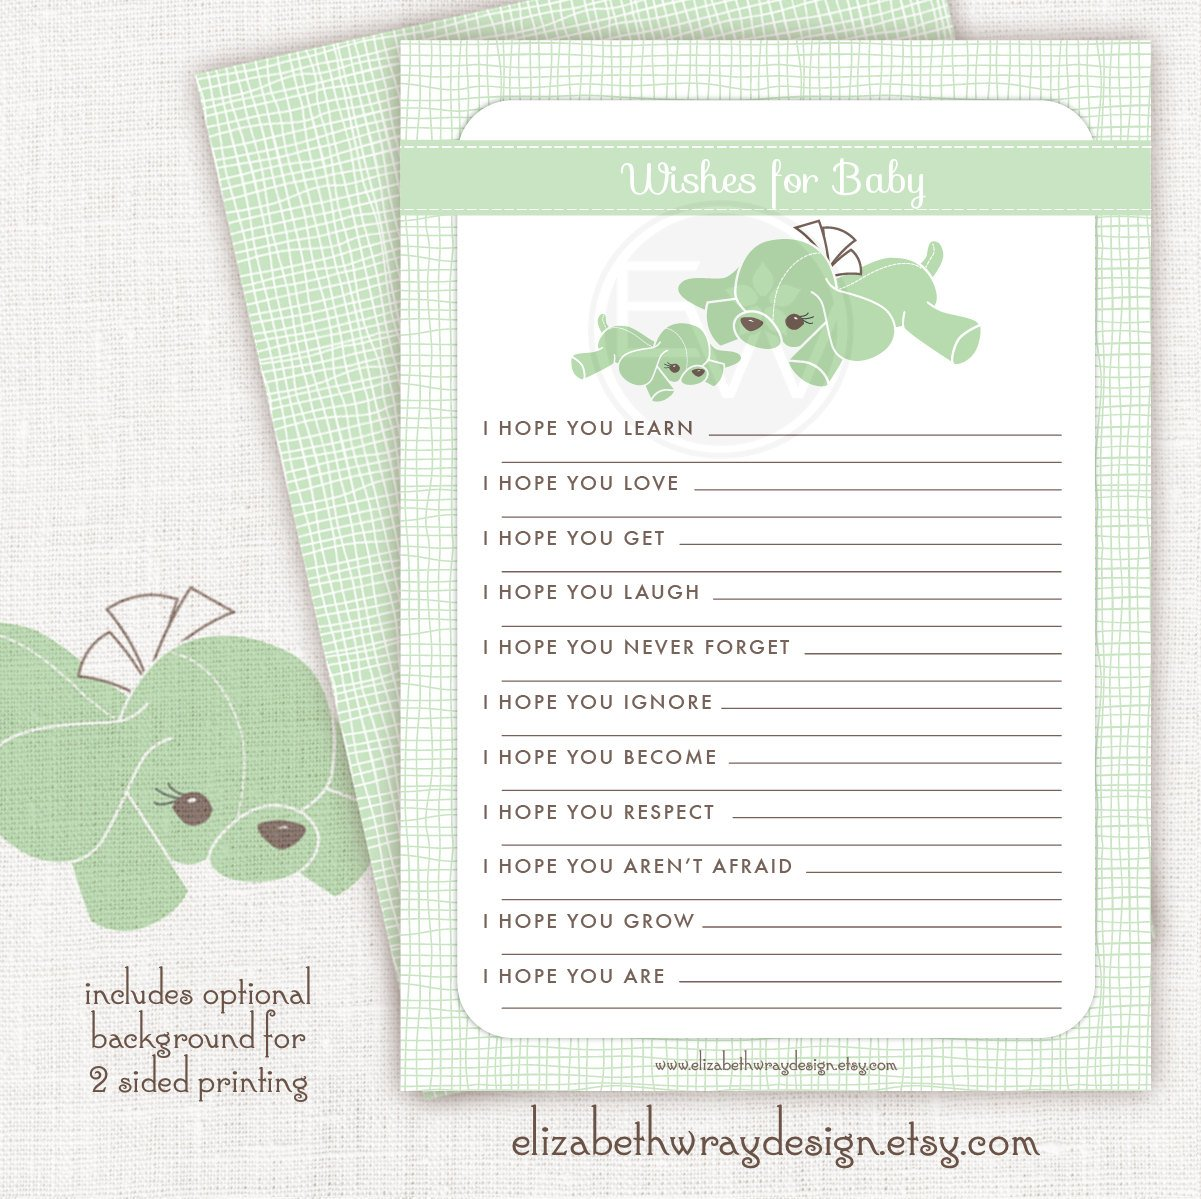 baby shower wishes for baby card